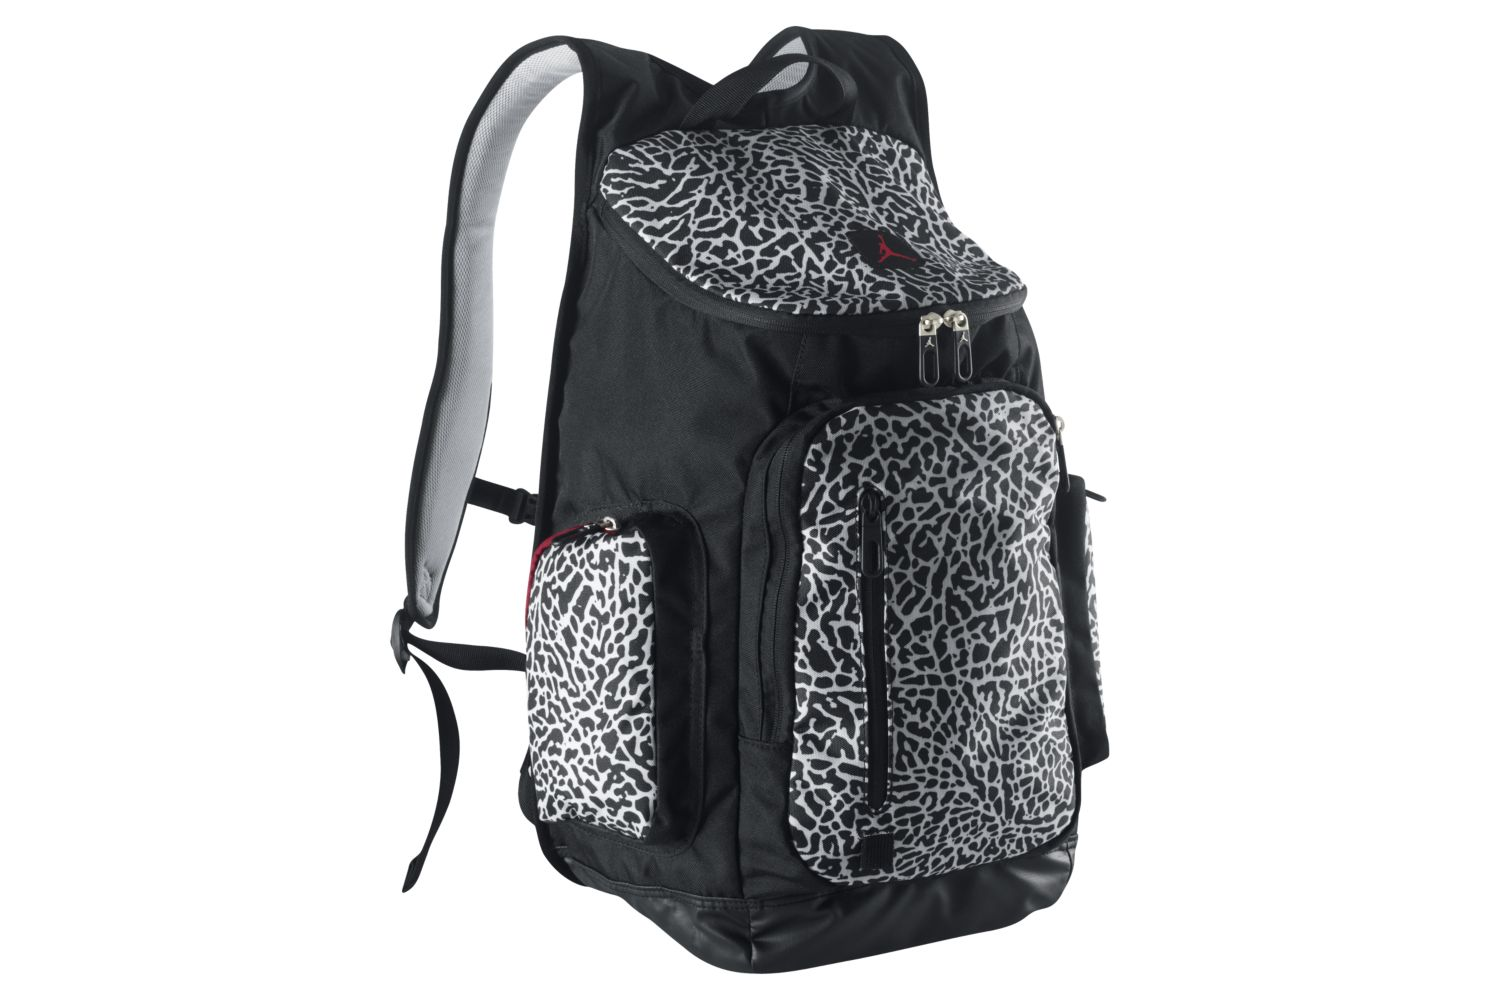 63ed6bd4fccb Buy air jordan backpacks on sale   up to 49% Discounts